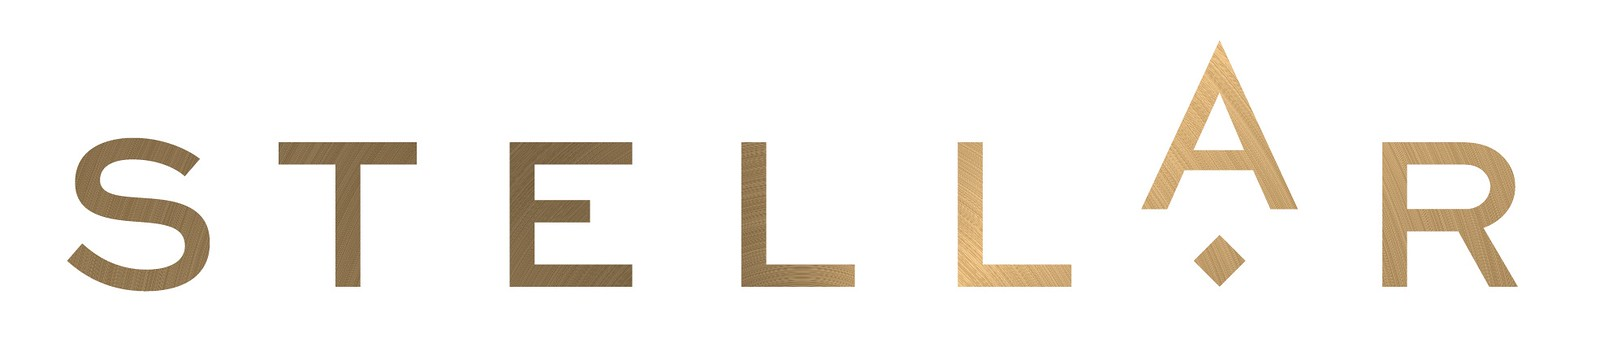 Stellar logo (photo credit: Stellar)